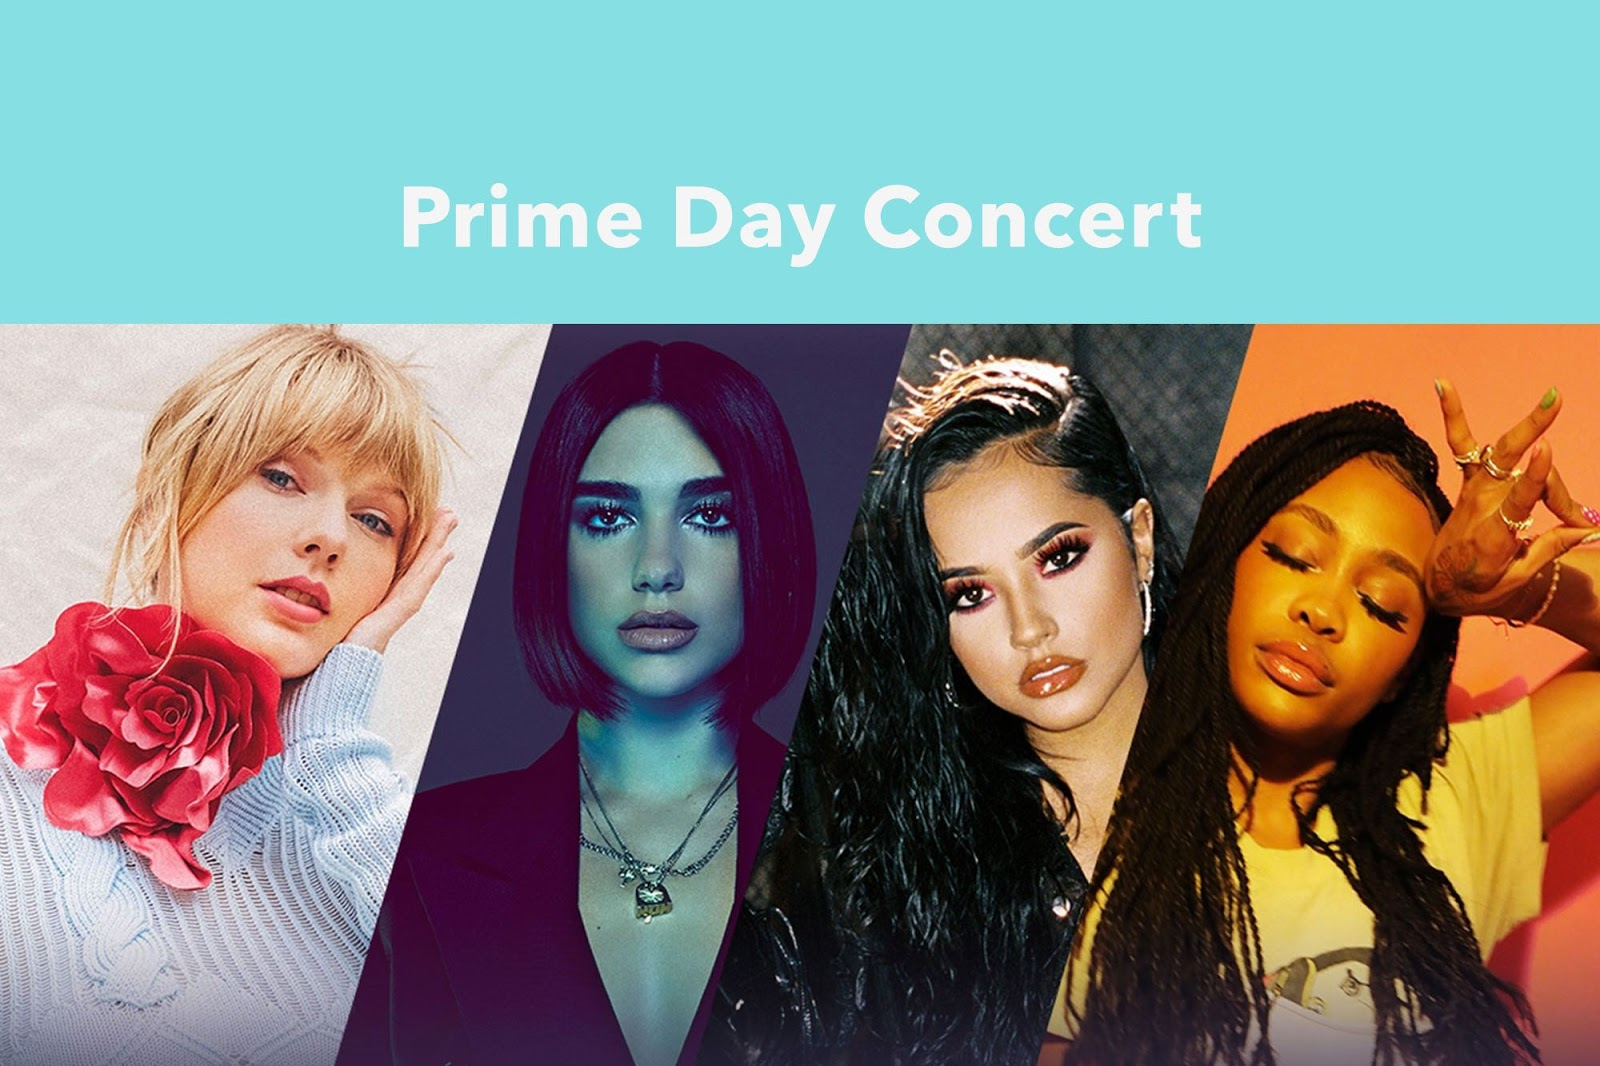 Prime Day Concert